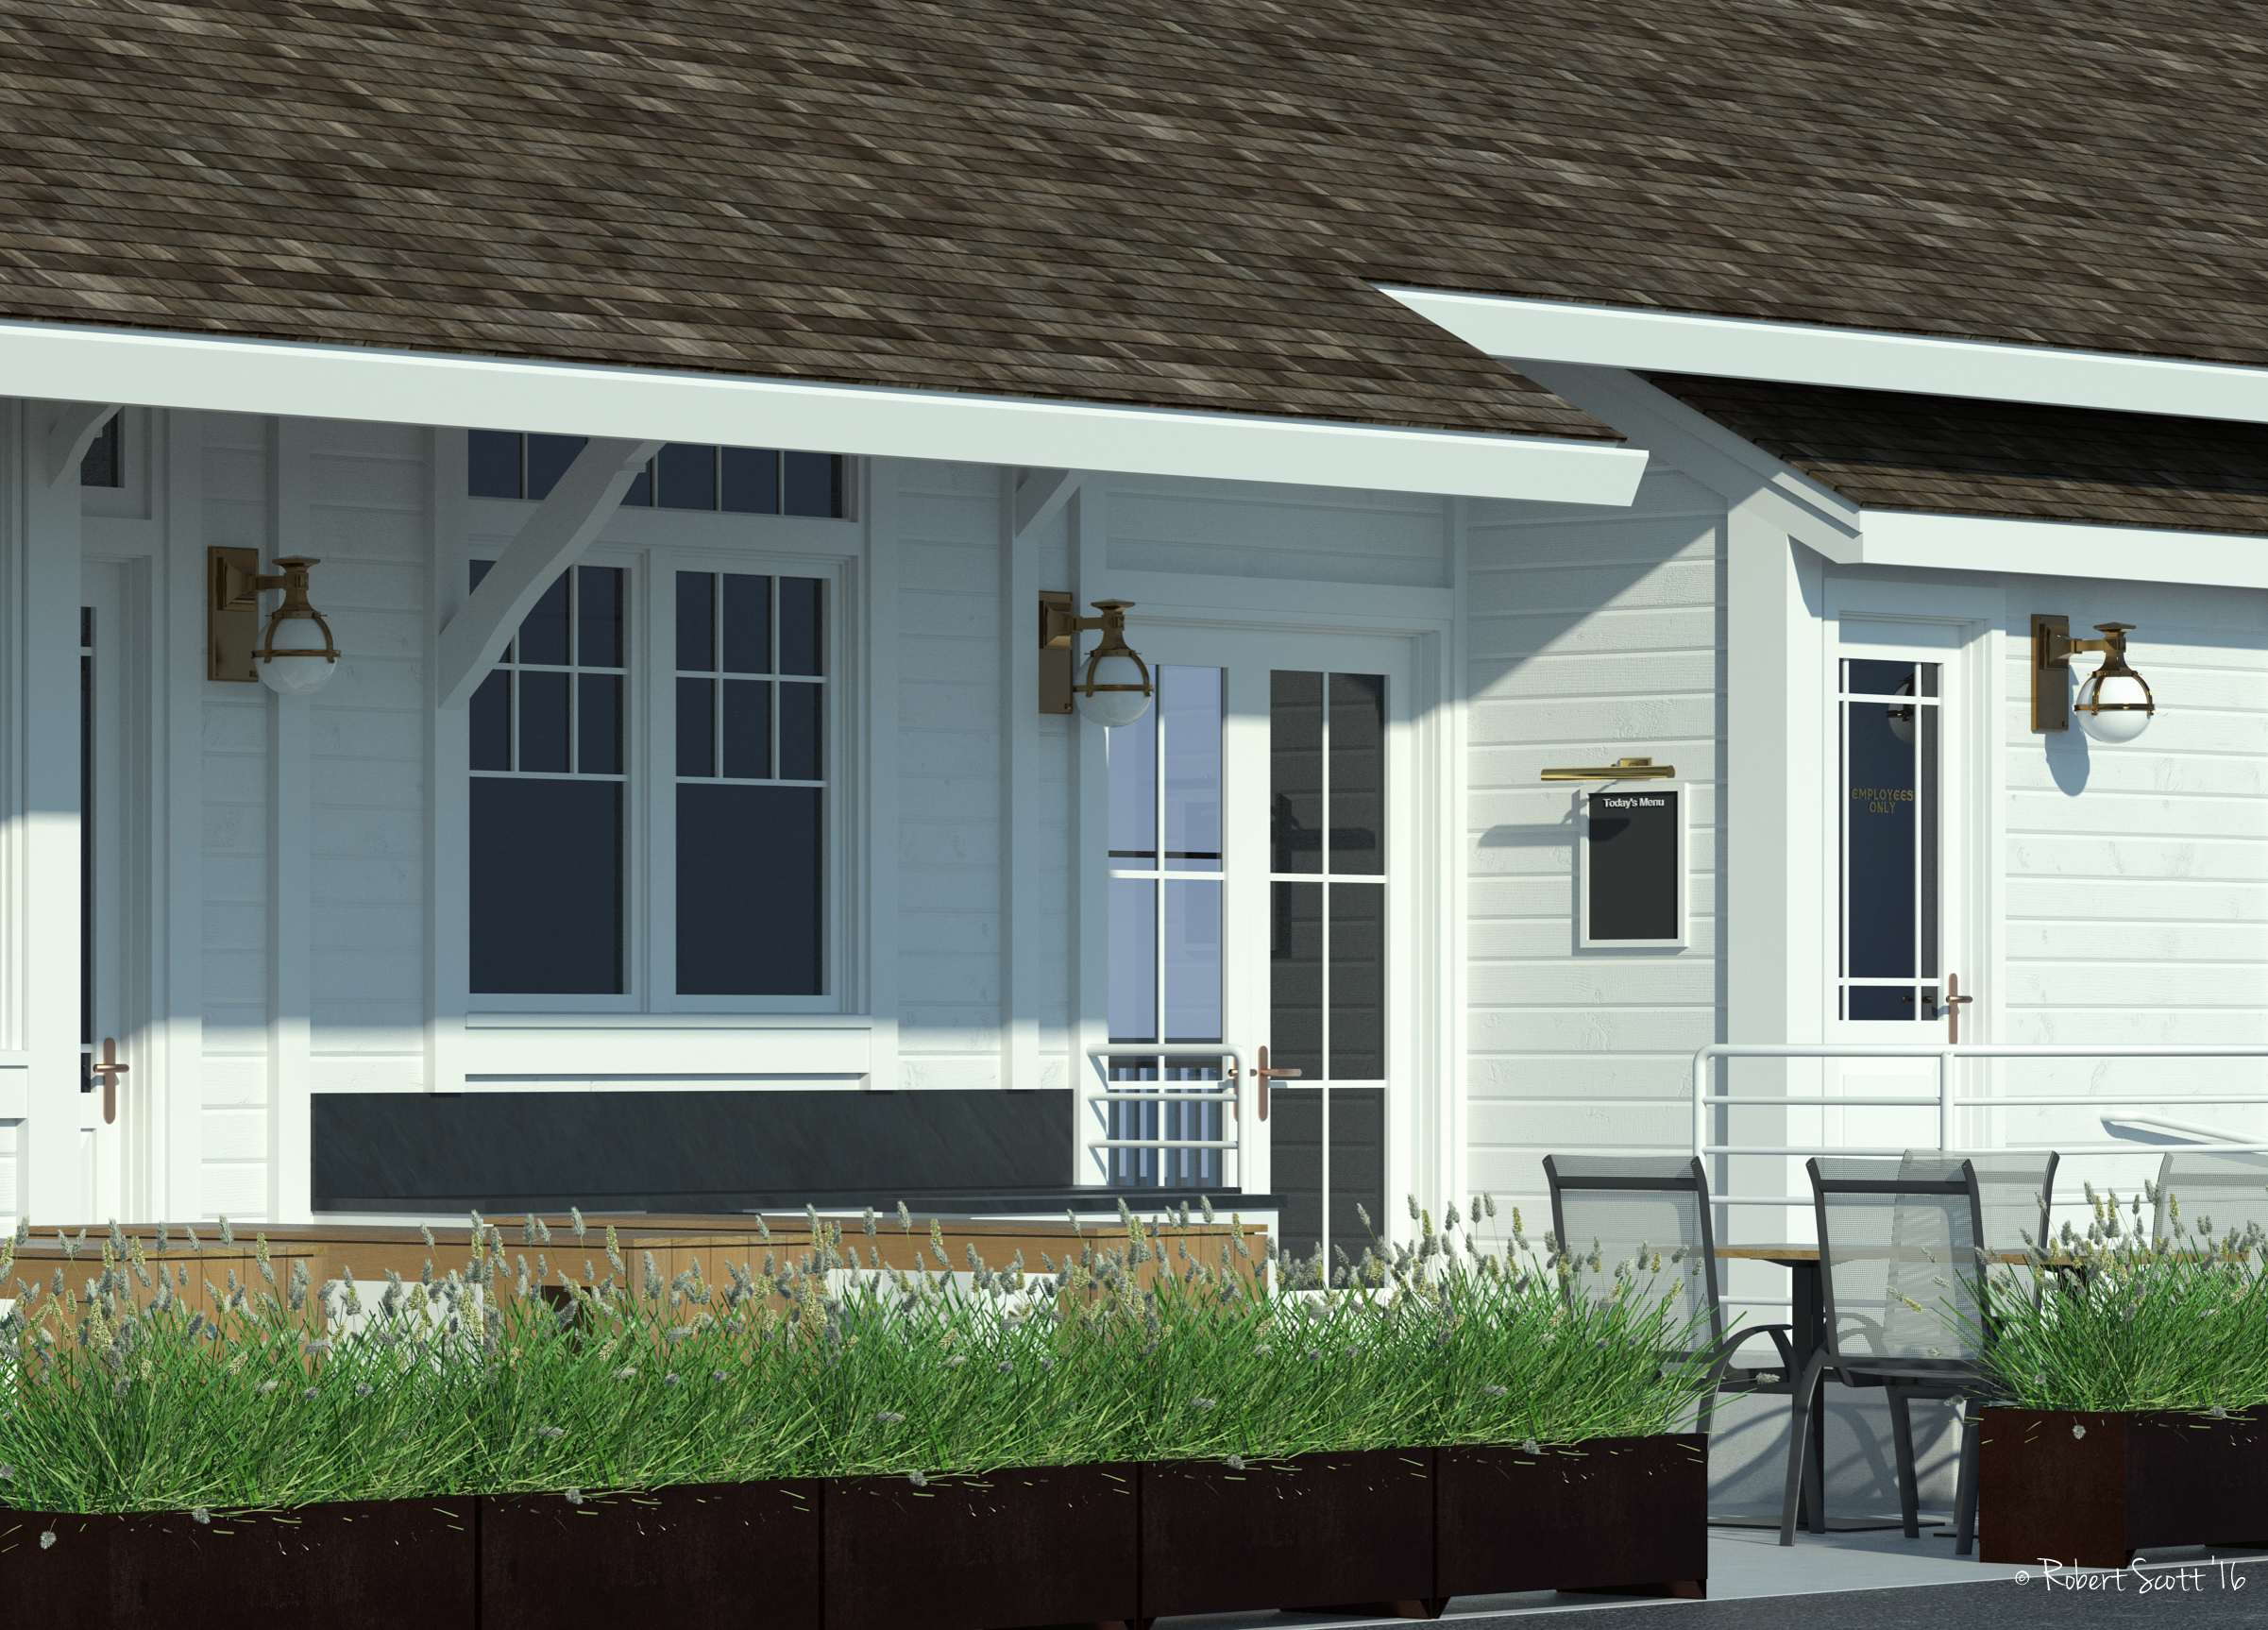 pka_yountville-brewing-proposed_18aug16-scene-21_28802104020_o.jpg